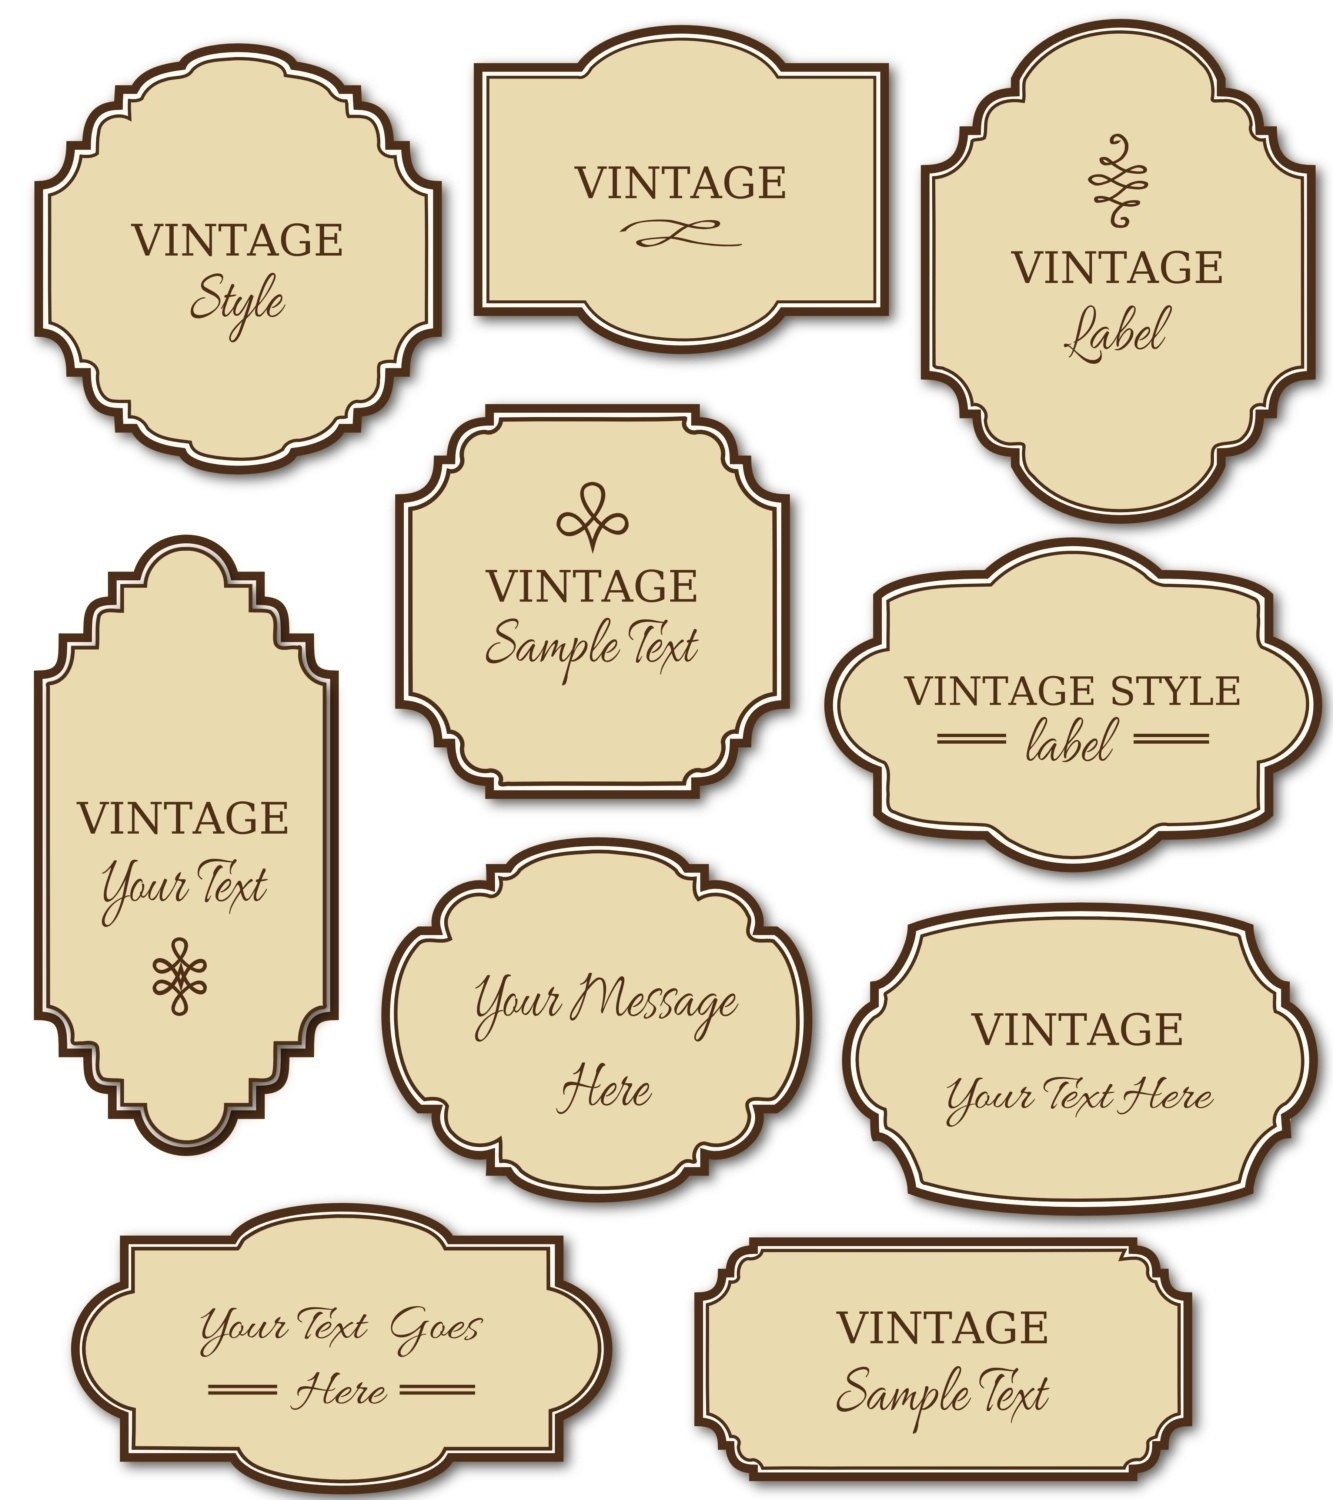 Vintage Label Templates Png | World Of Label throughout Vintage Label Templates 26543